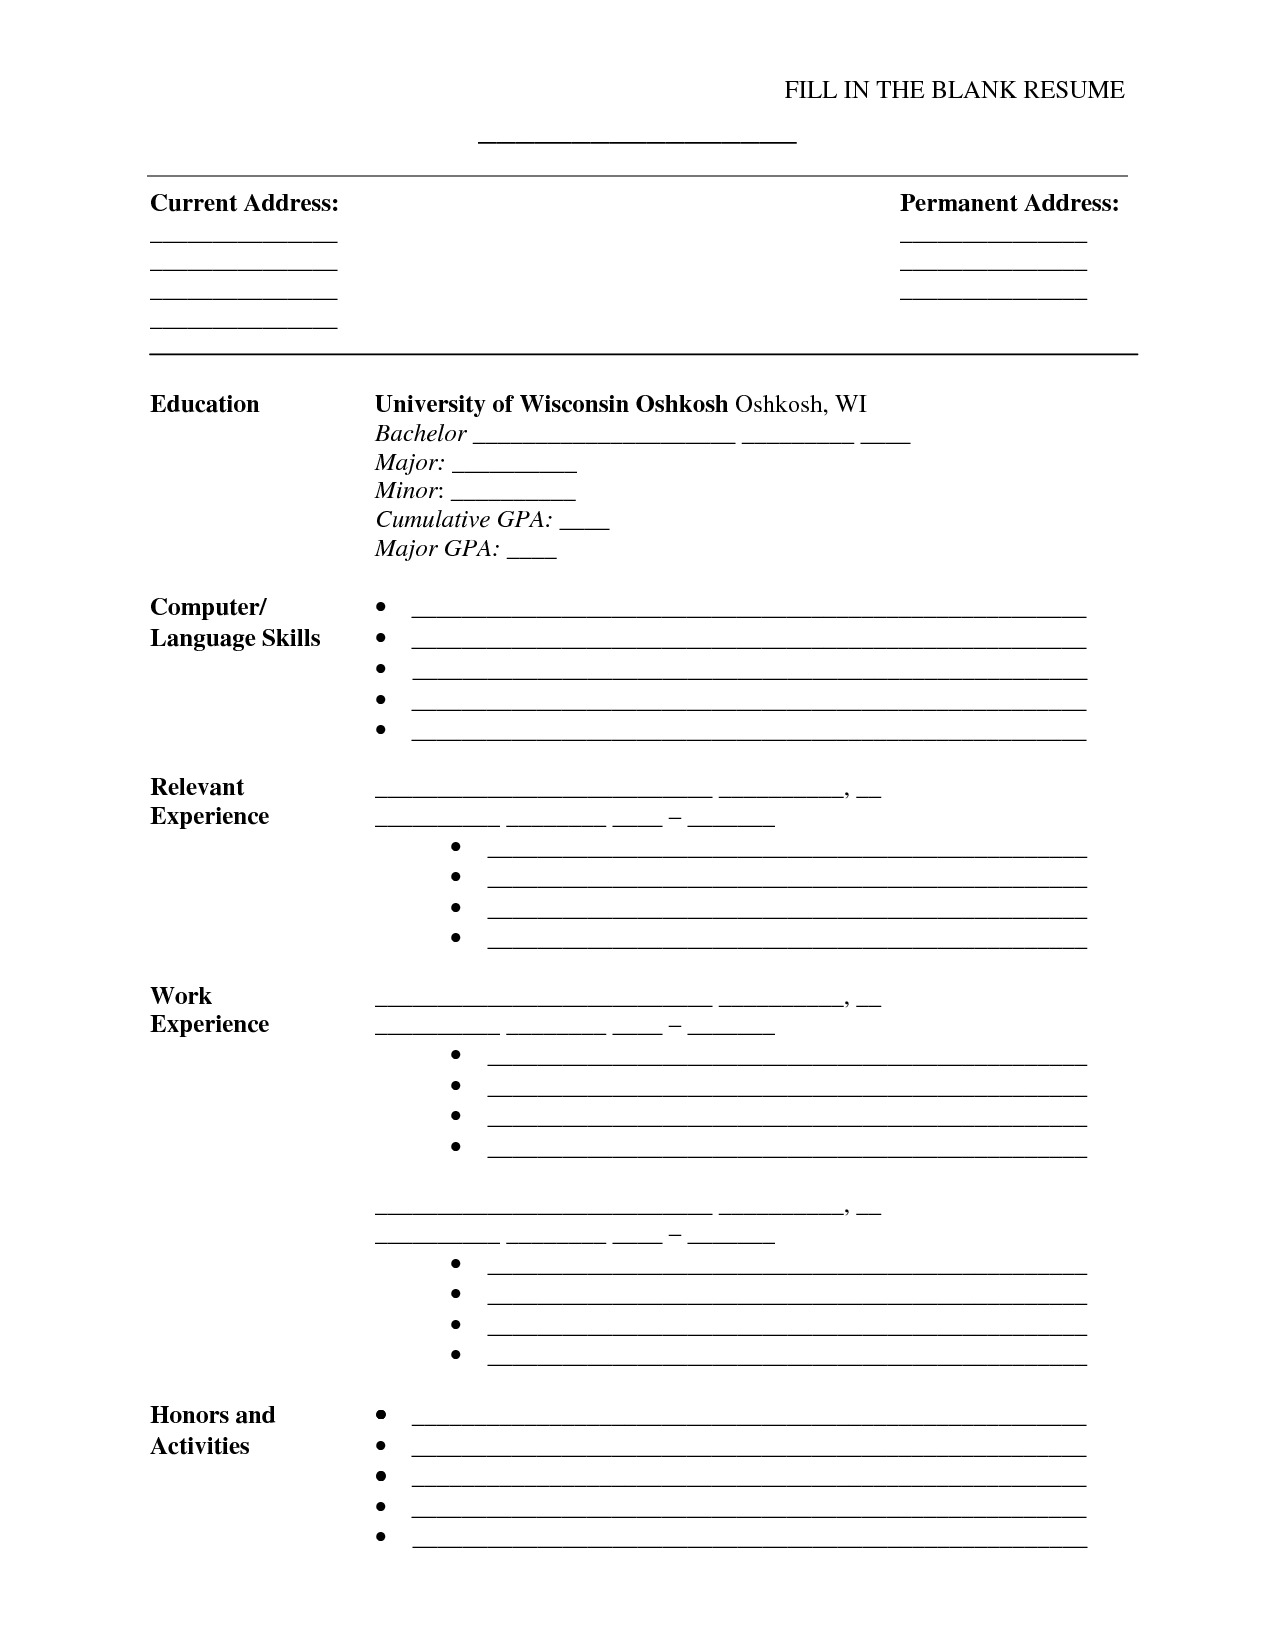 Fill In The Blank Resume PDF   Http://www.resumecareer.info  Free Resume Pdf